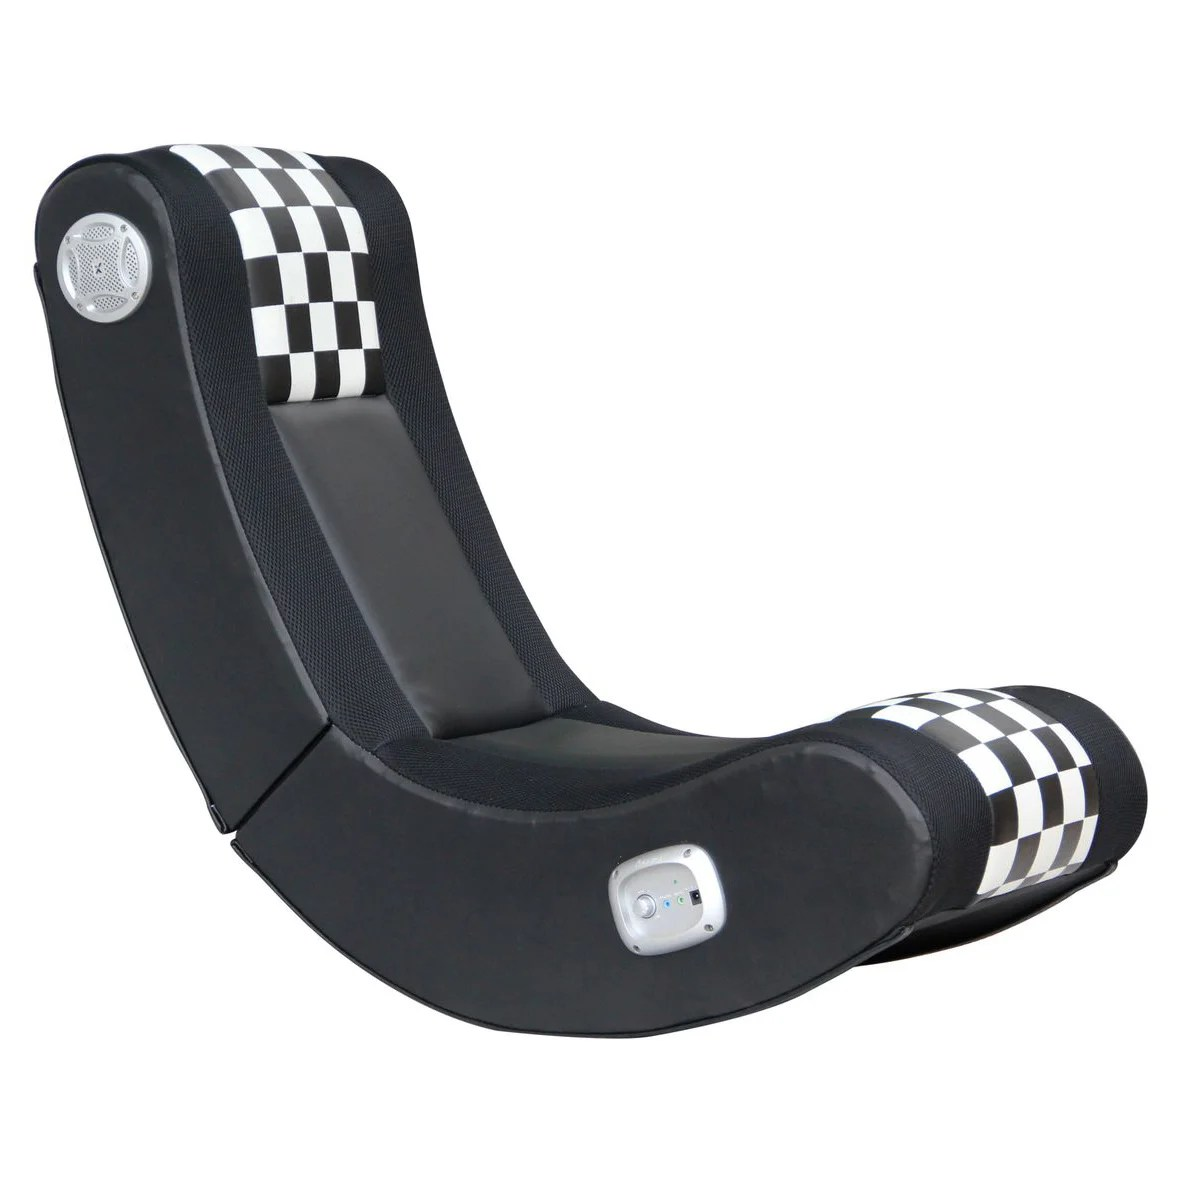 Game Chair With Speakers X Rocker Drift Gaming Chair With Wireless 2 1 Speakers